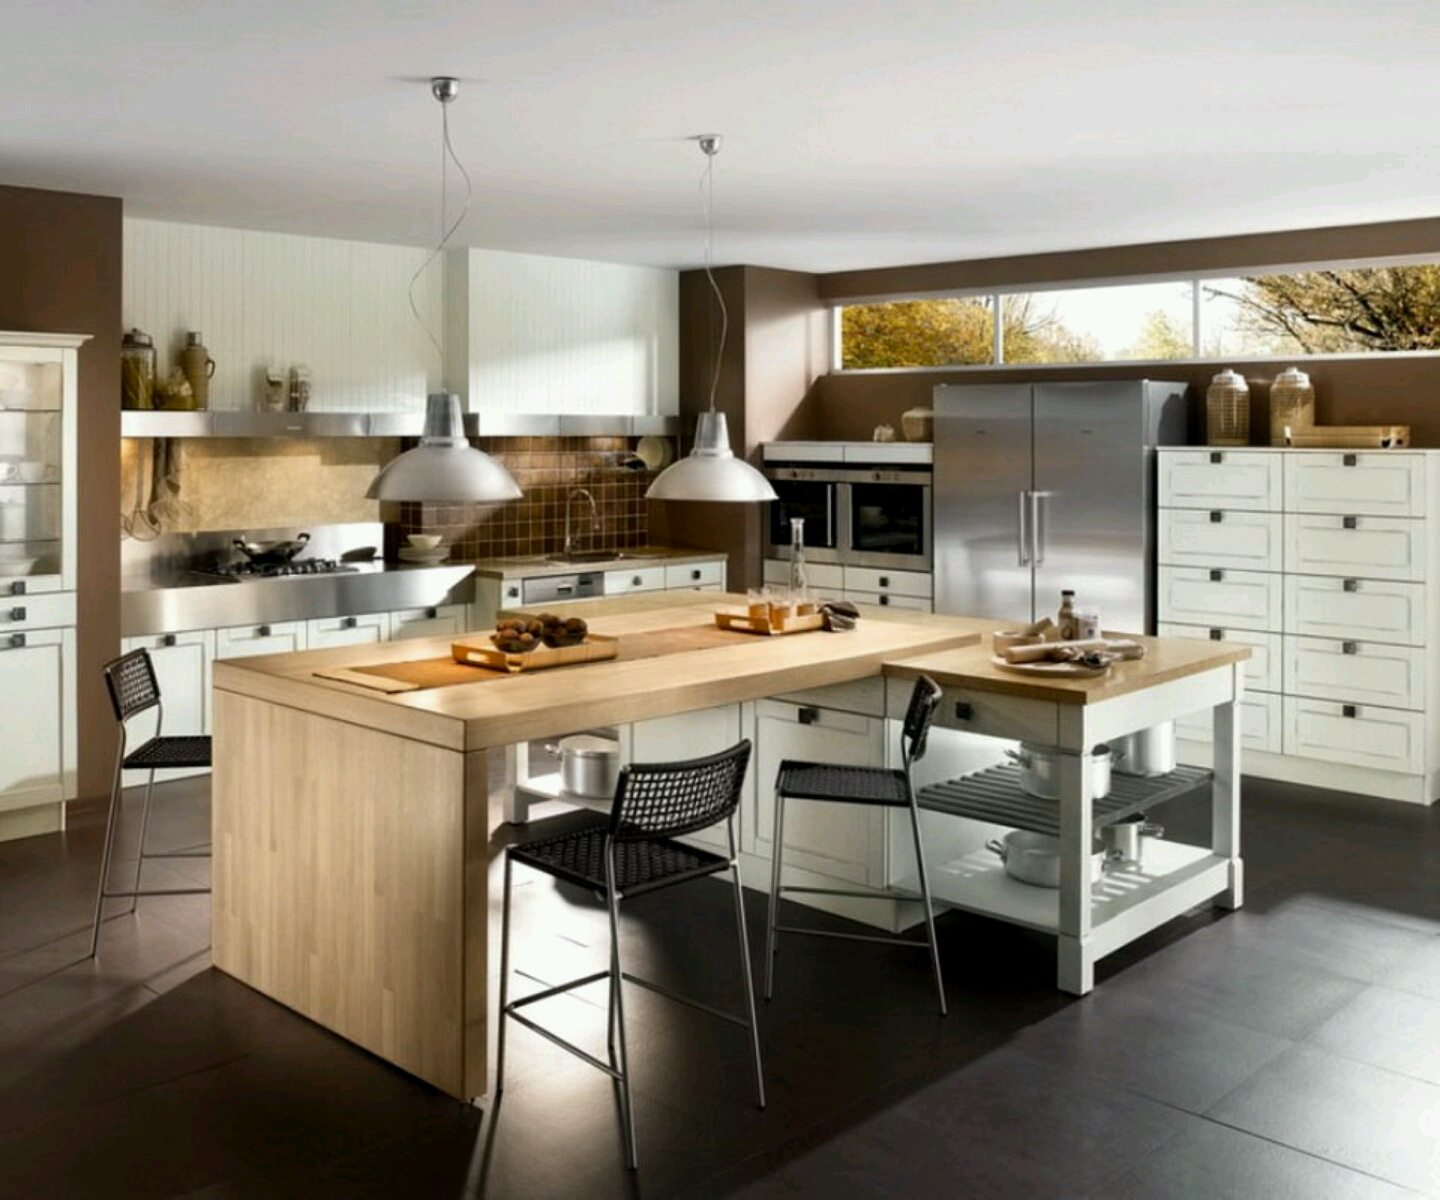 Http Shoaibnzm Home Design Blogspot Com 2013 01 Modern Kitchen Designs Ideas 20 Html